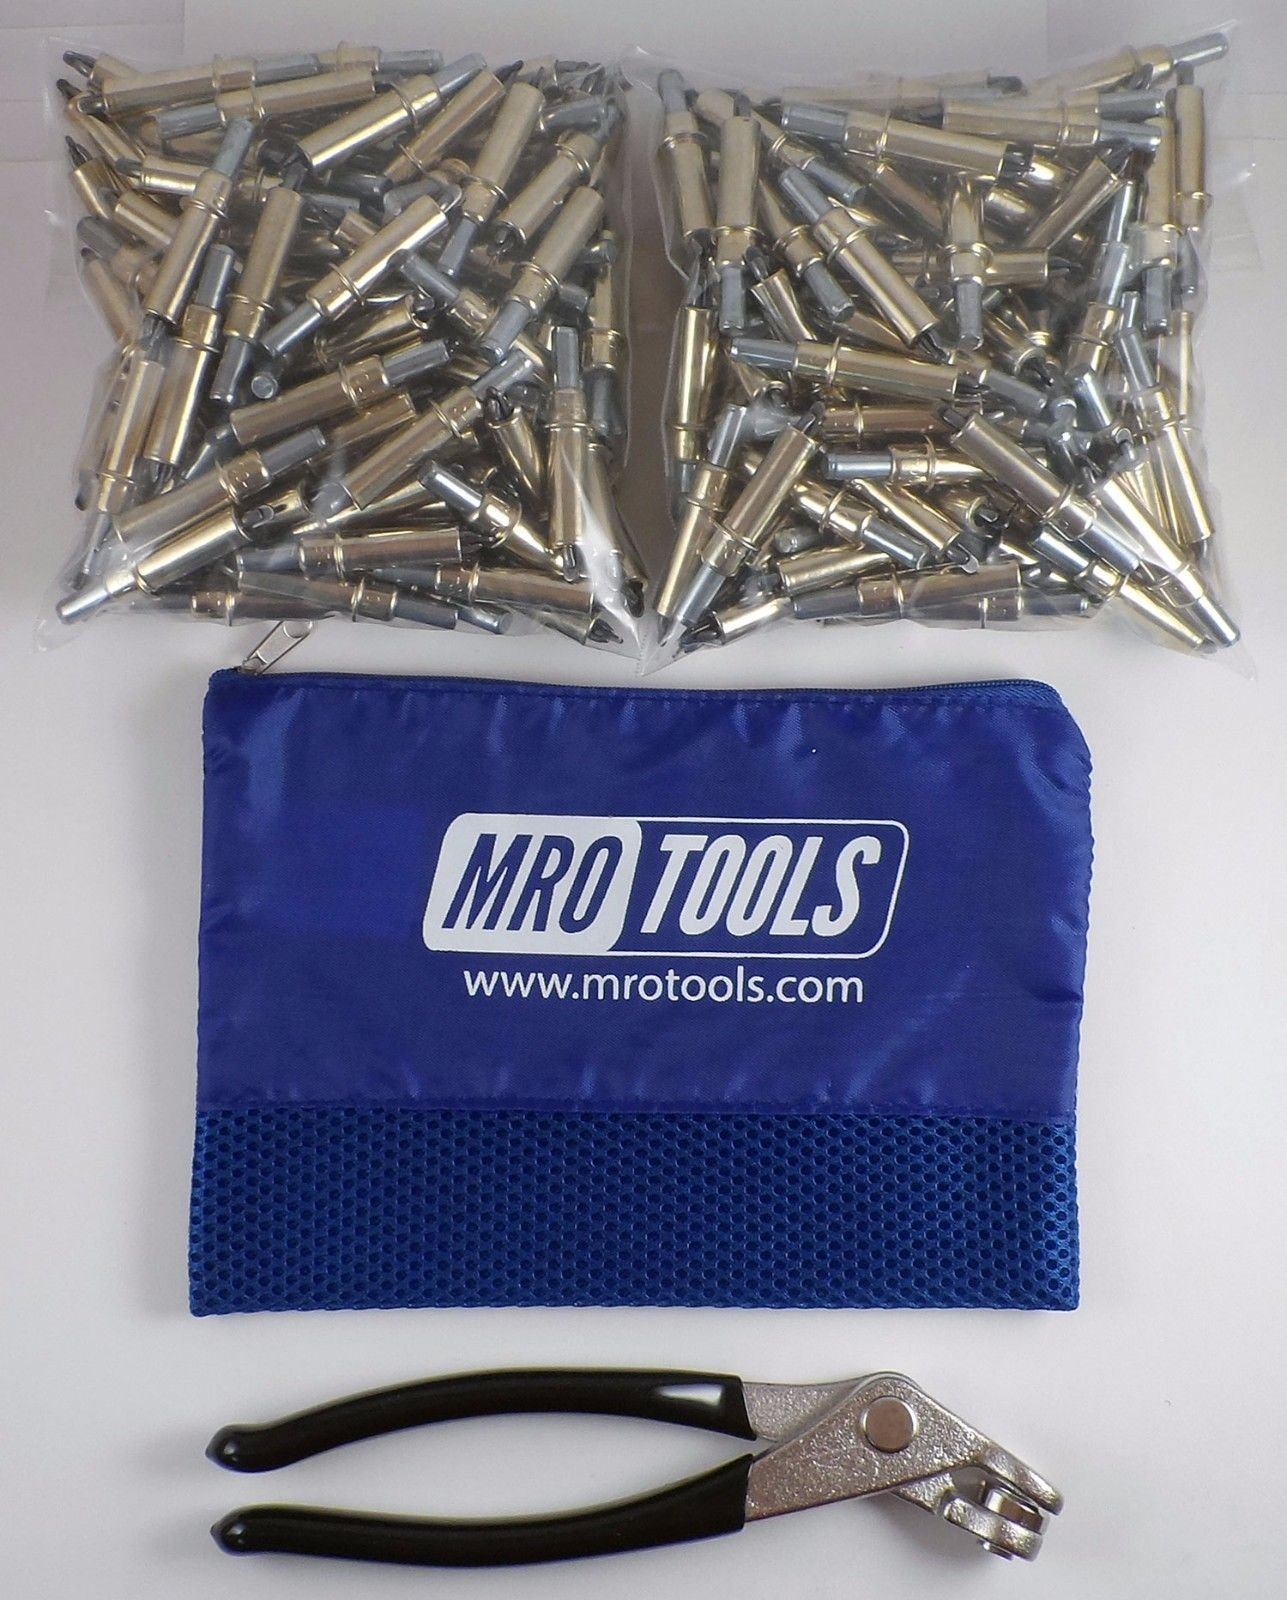 200 3/16 Cleco Sheet Metal Fasteners + Cleco Pliers w/Carry Bag (K1S200-3/16) by MRO Tools Cleco Fasteners